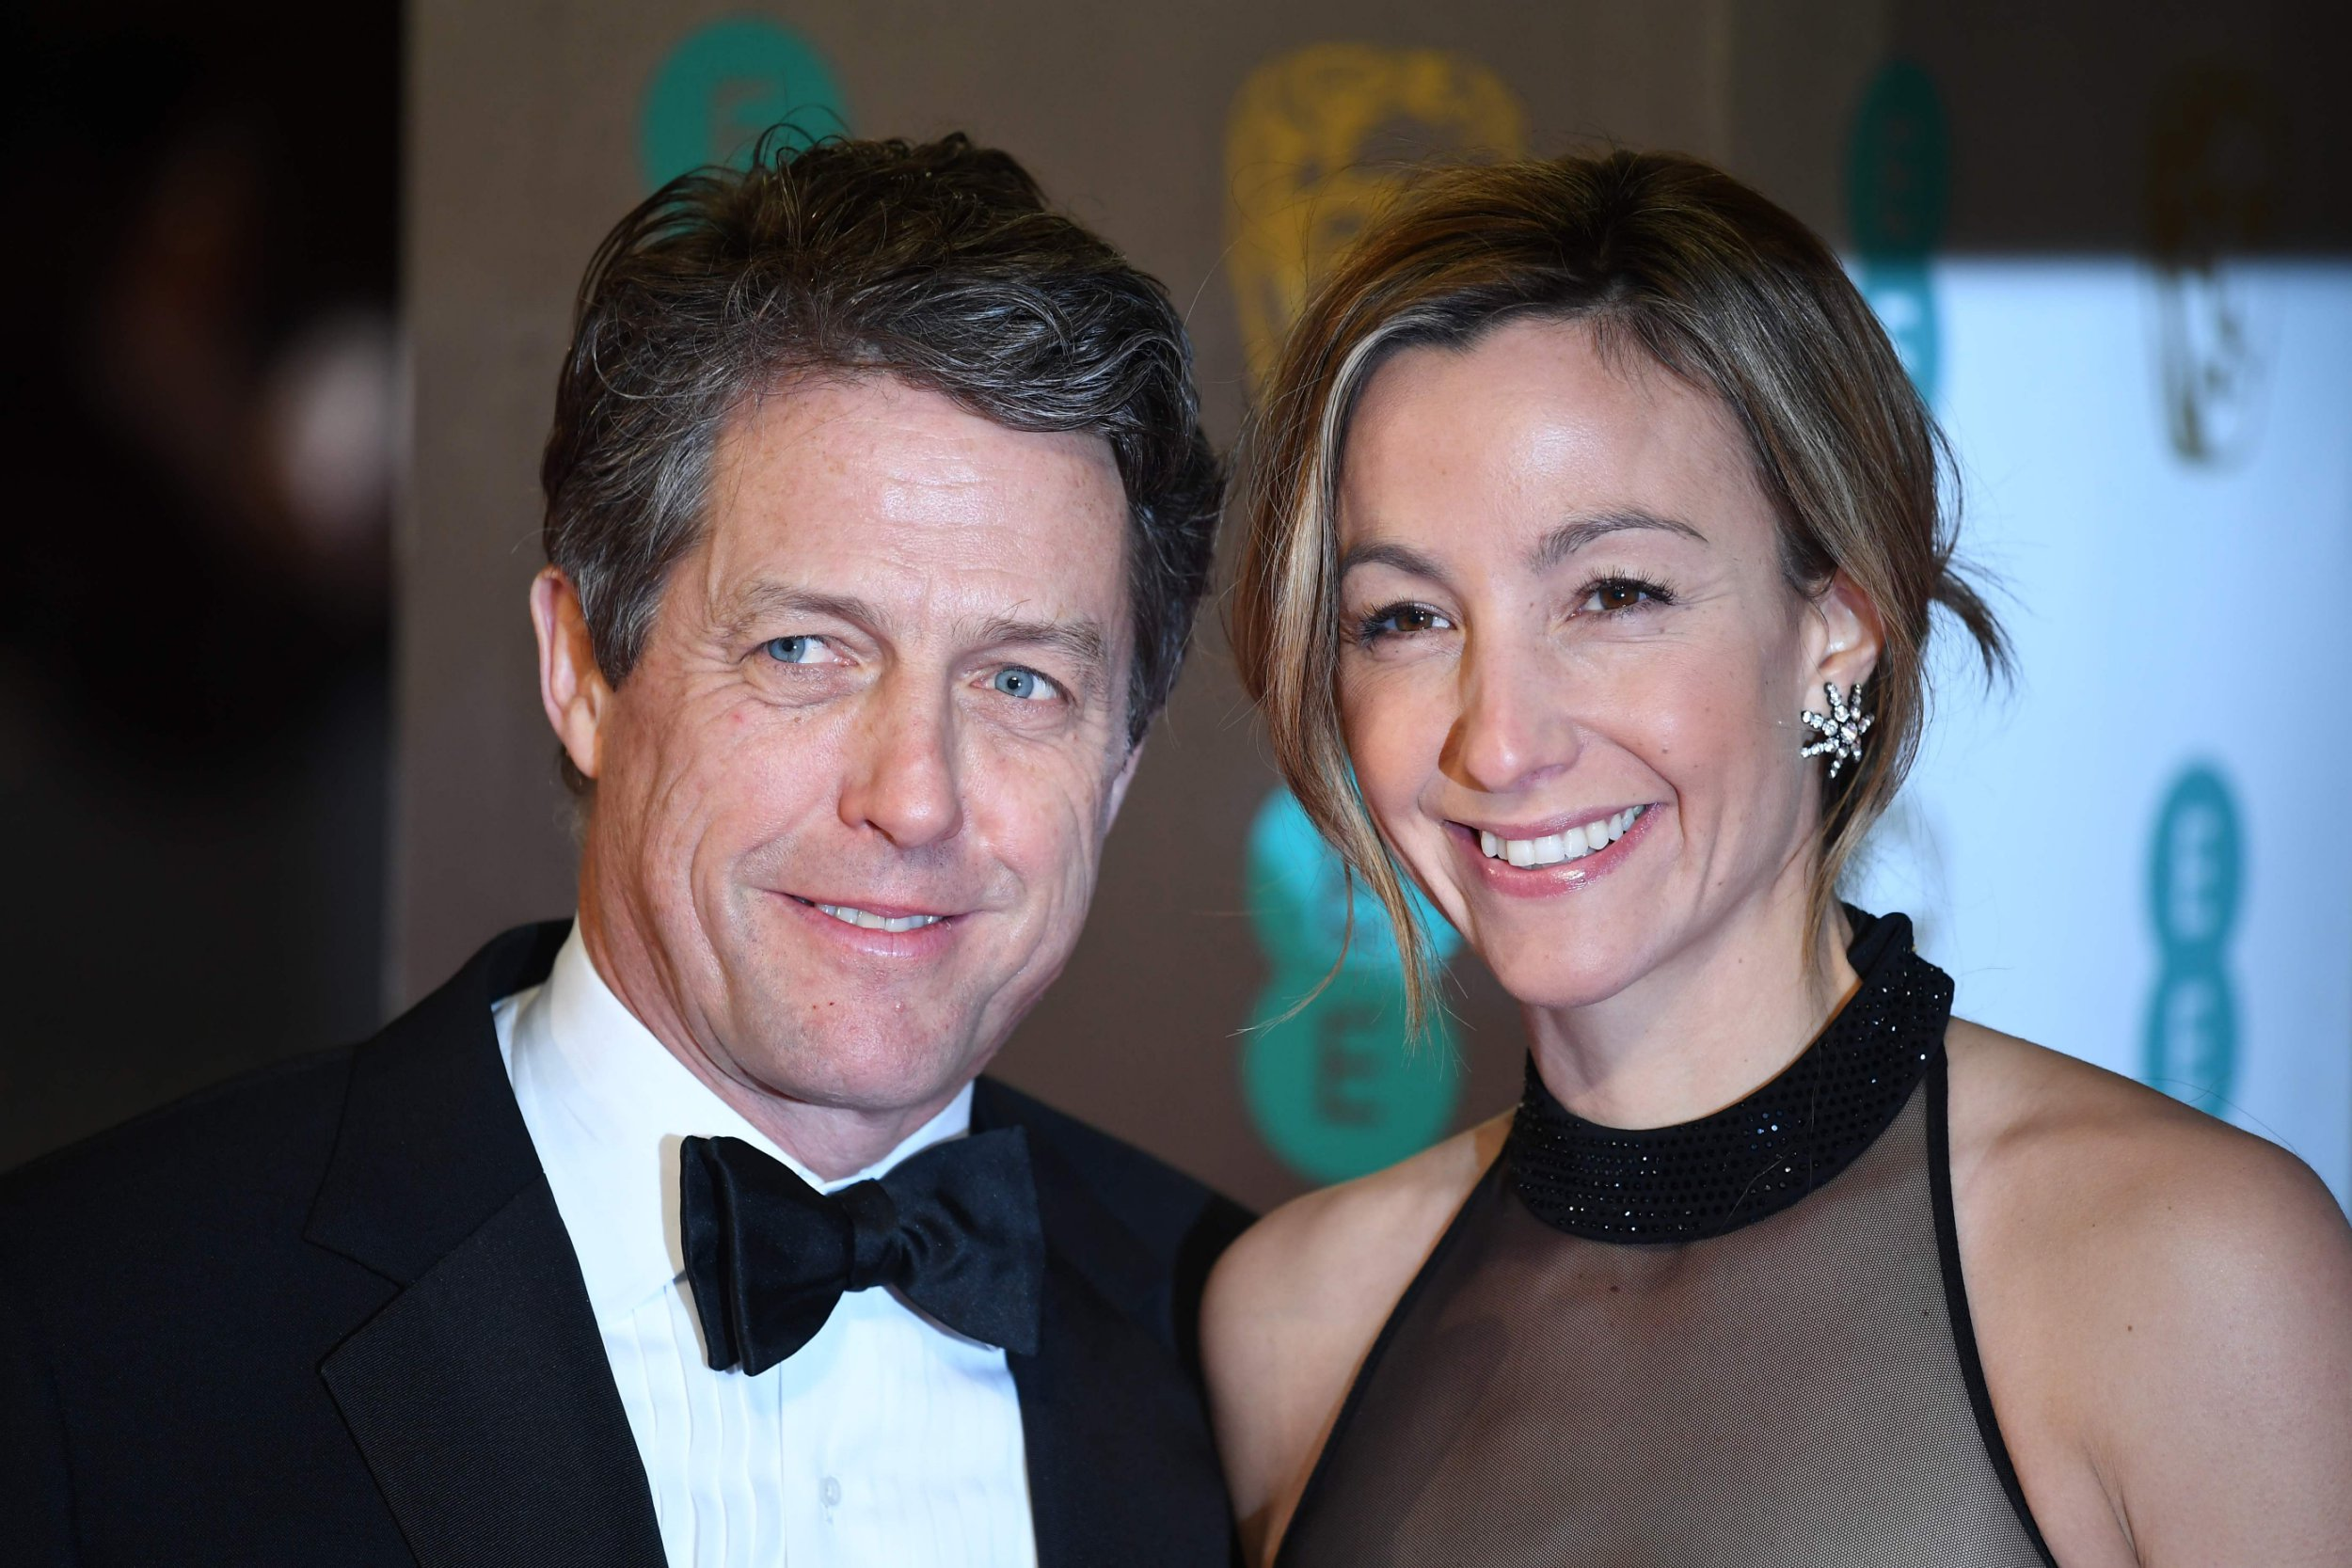 """(FILES) In this file photo taken on February 12, 2017 British actor Hugh Grant (L) and Swedish producer Anna Eberstein (R) pose upon arrival at the BAFTA British Academy Film Awards at the Royal Albert Hall in London on February 12, 2017. Veteran bachelor Hugh Grant, star of a string of romantic comedies including """"Four Weddings and a Funeral"""", is finally getting married for the first time at the age of 57 to his Swedish girlfriend, 39-year-old television producer Anna Eberstein. / AFP PHOTO / Justin TALLISJUSTIN TALLIS/AFP/Getty Images"""